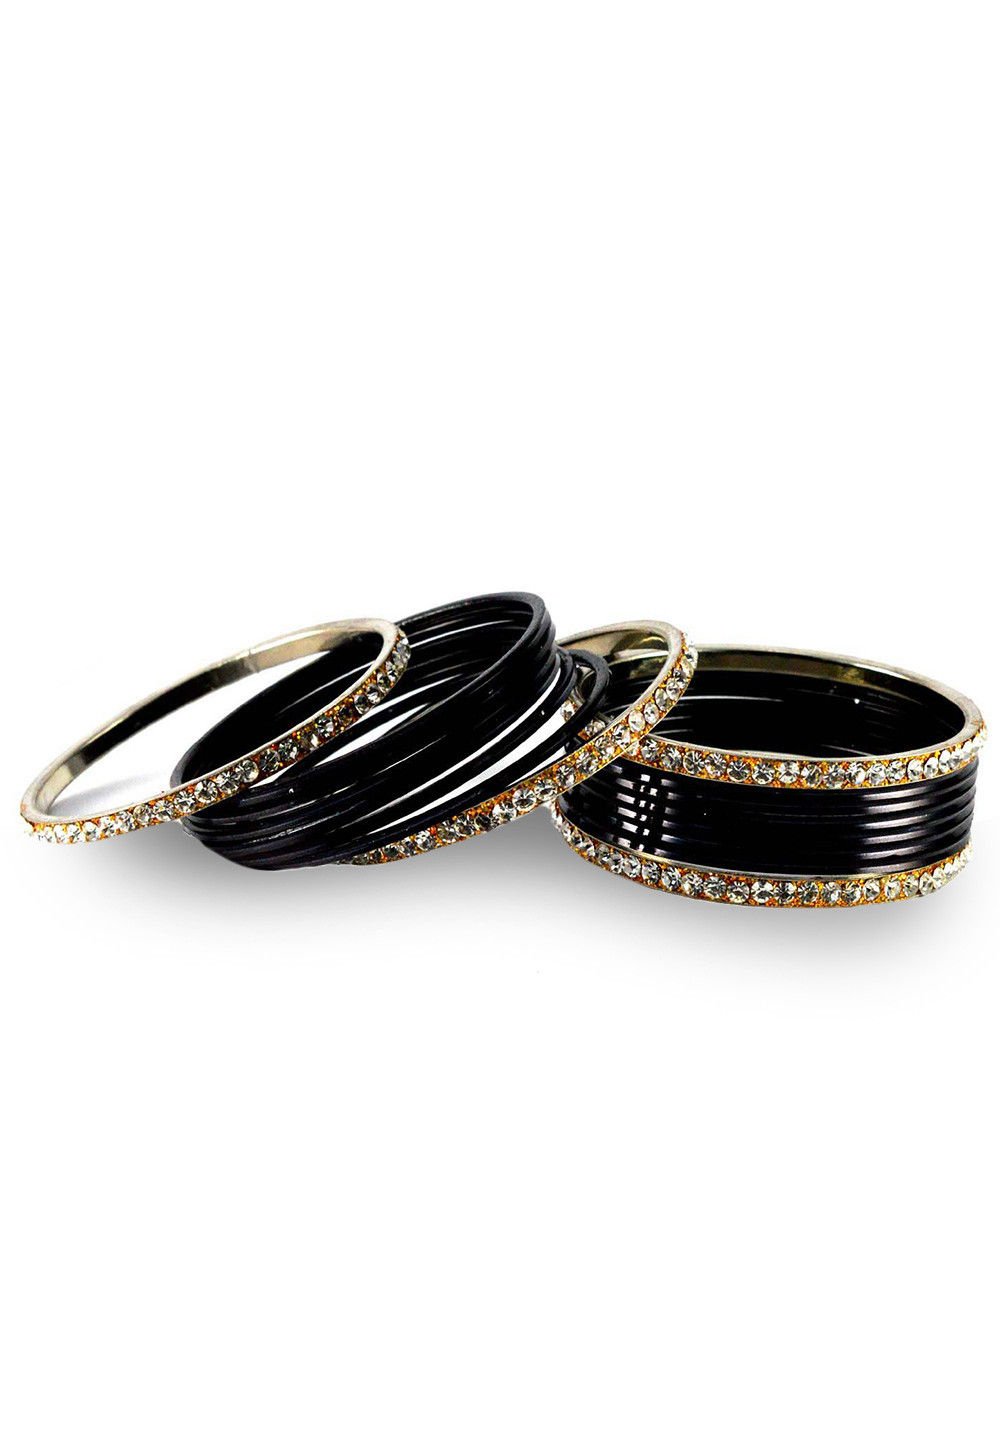 Stone Studded Bangle Set in Black and White